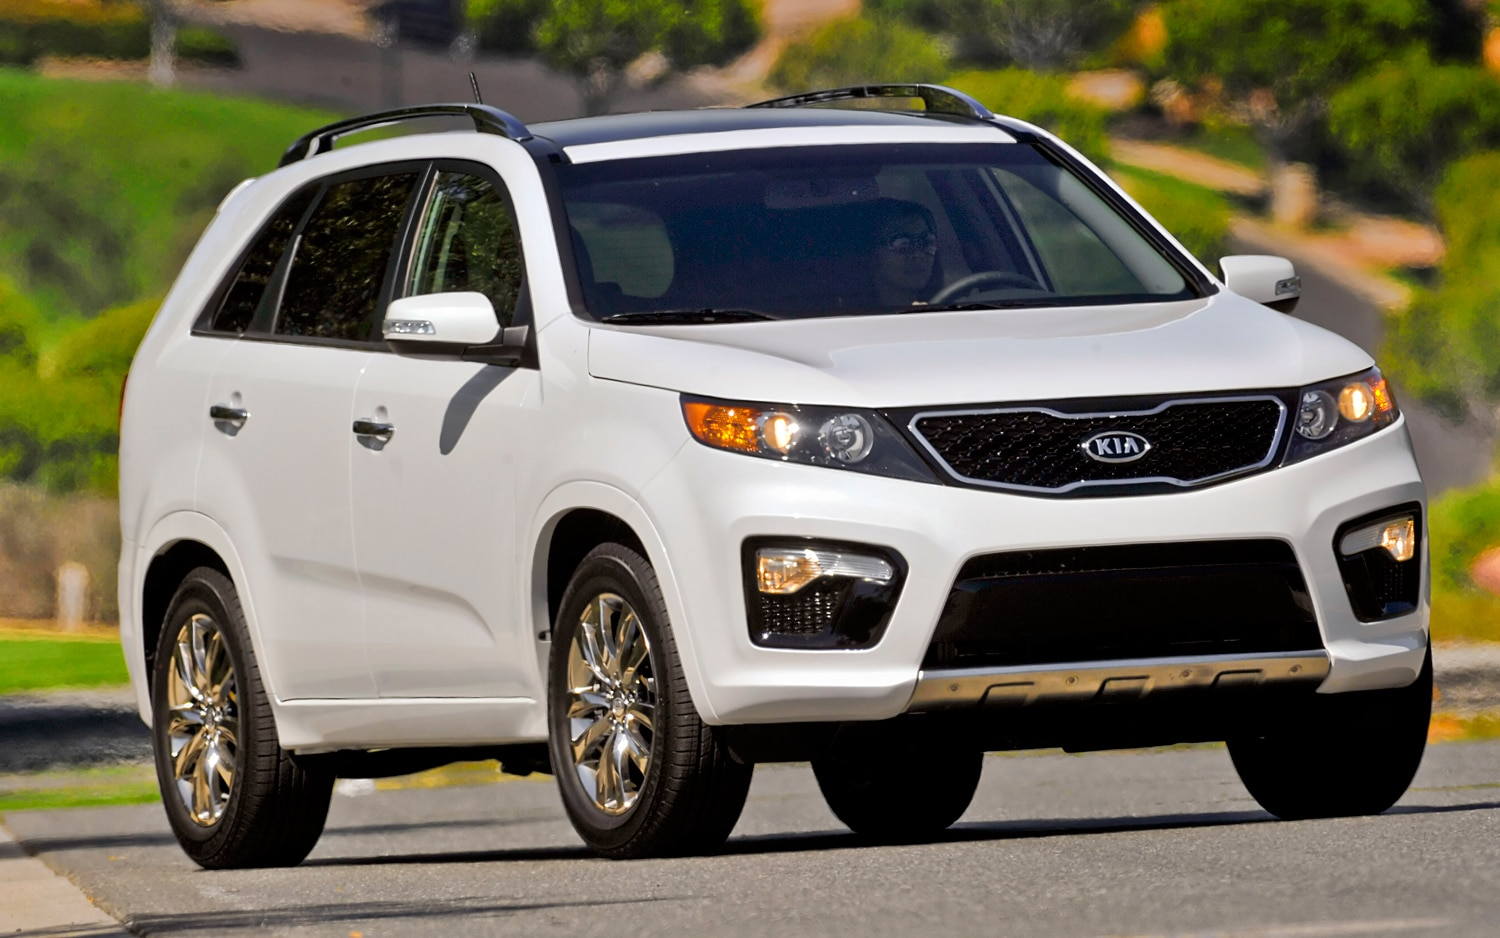 2012 Kia Sorento Front Right View 3